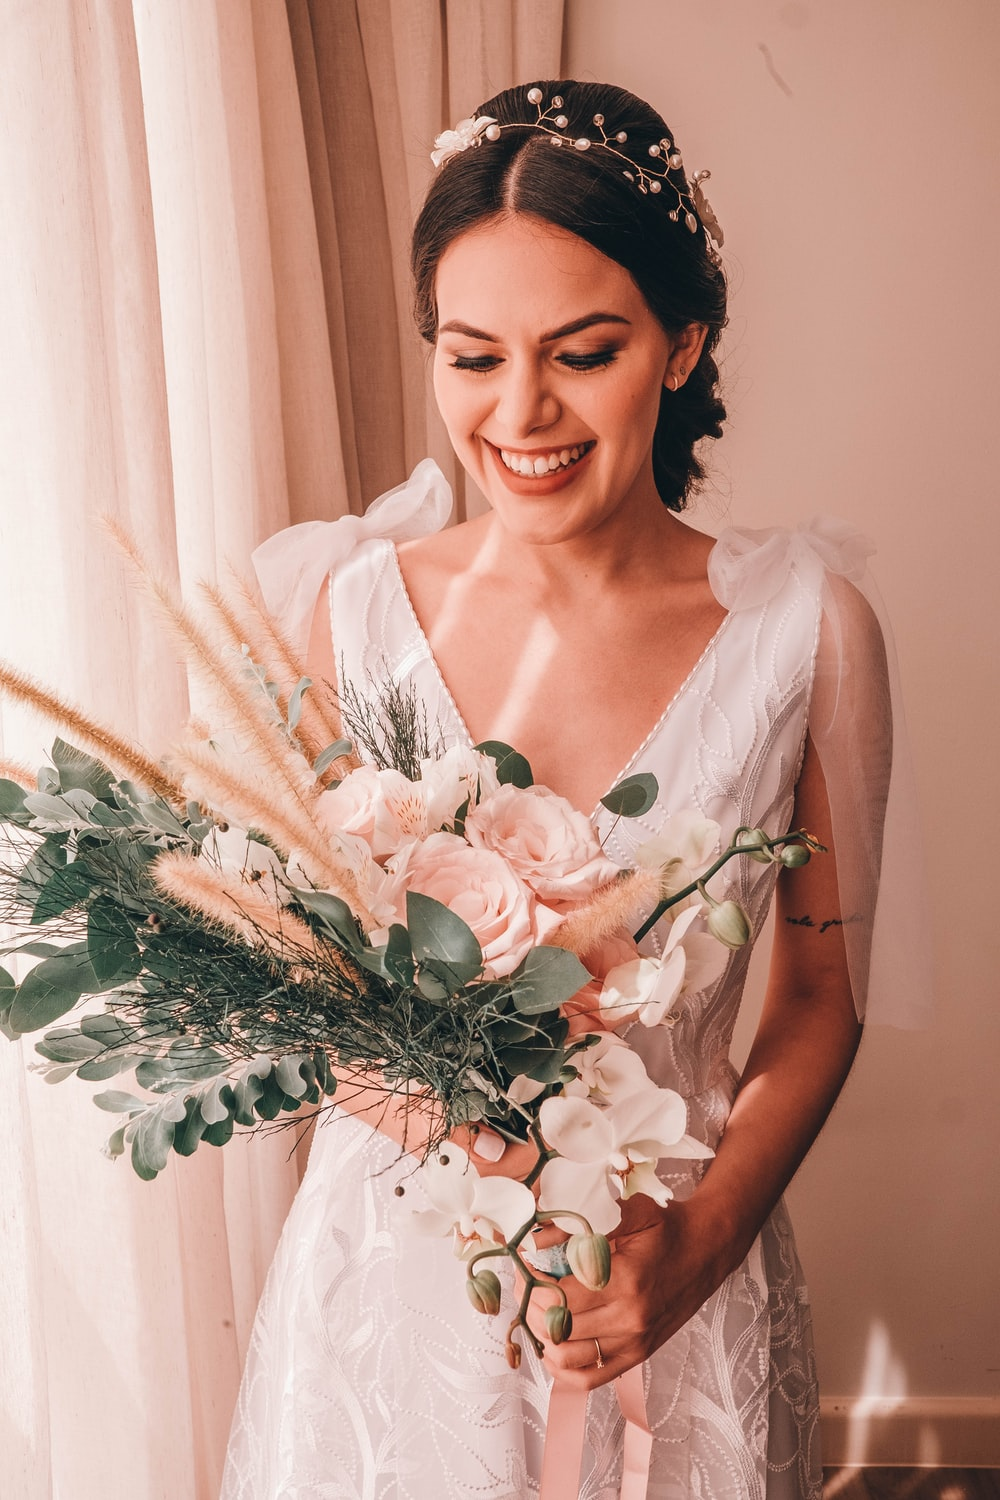 woman in white sleeveless dress holding white flower bouquet